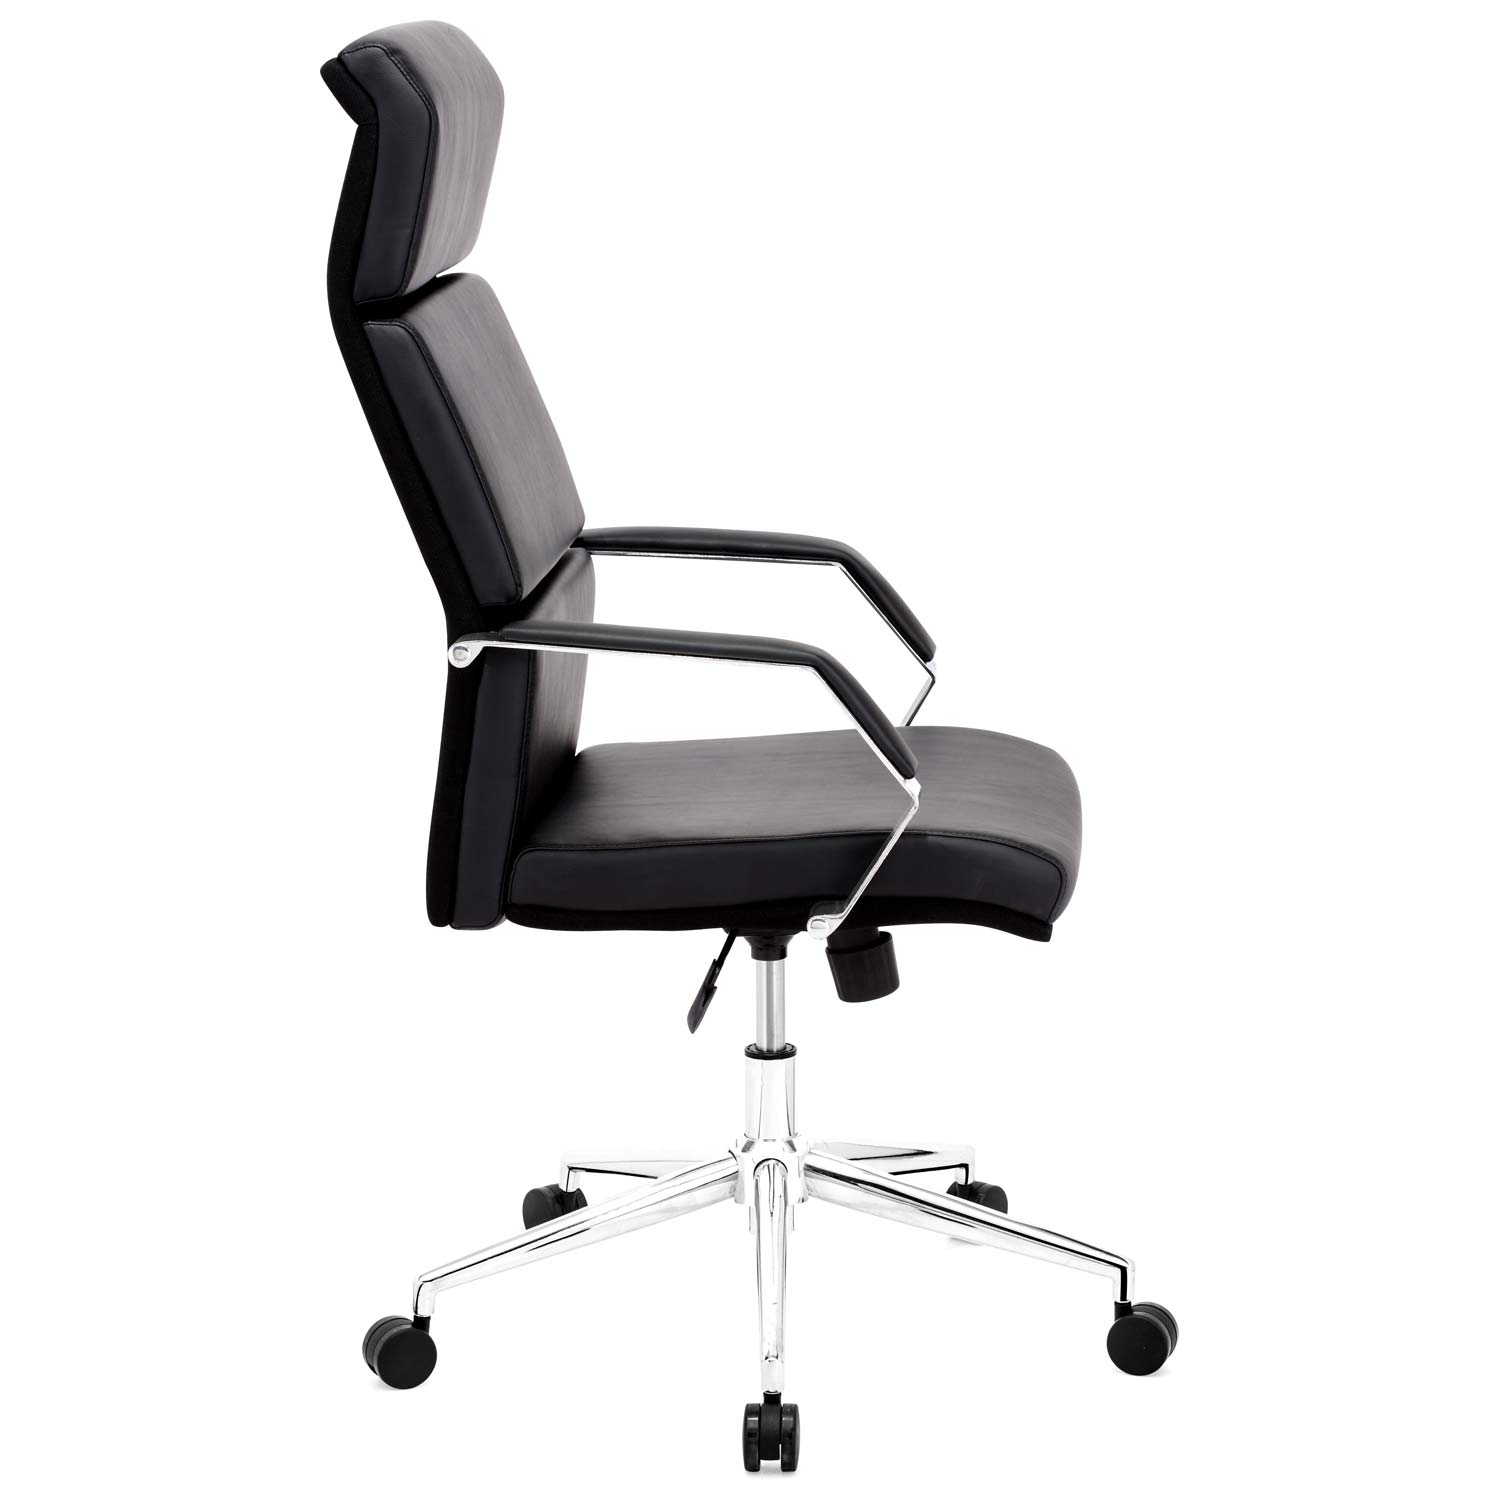 Lider Pro Office Chair - Chrome Steel, Black - ZM-205310